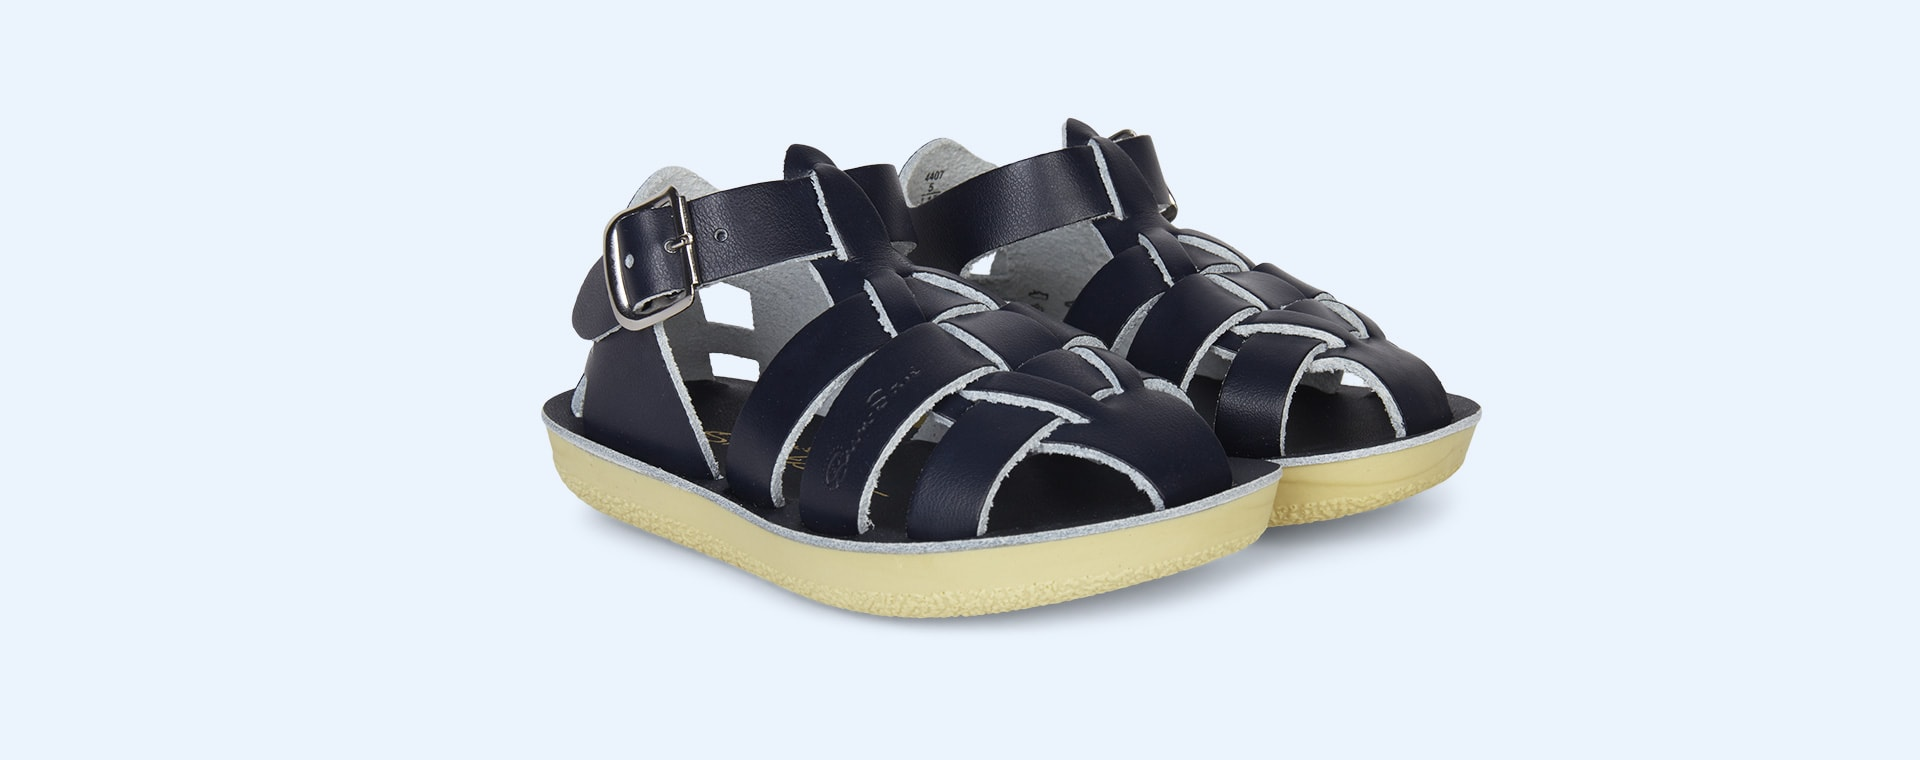 Navy Salt-Water Sandals Shark Sandal